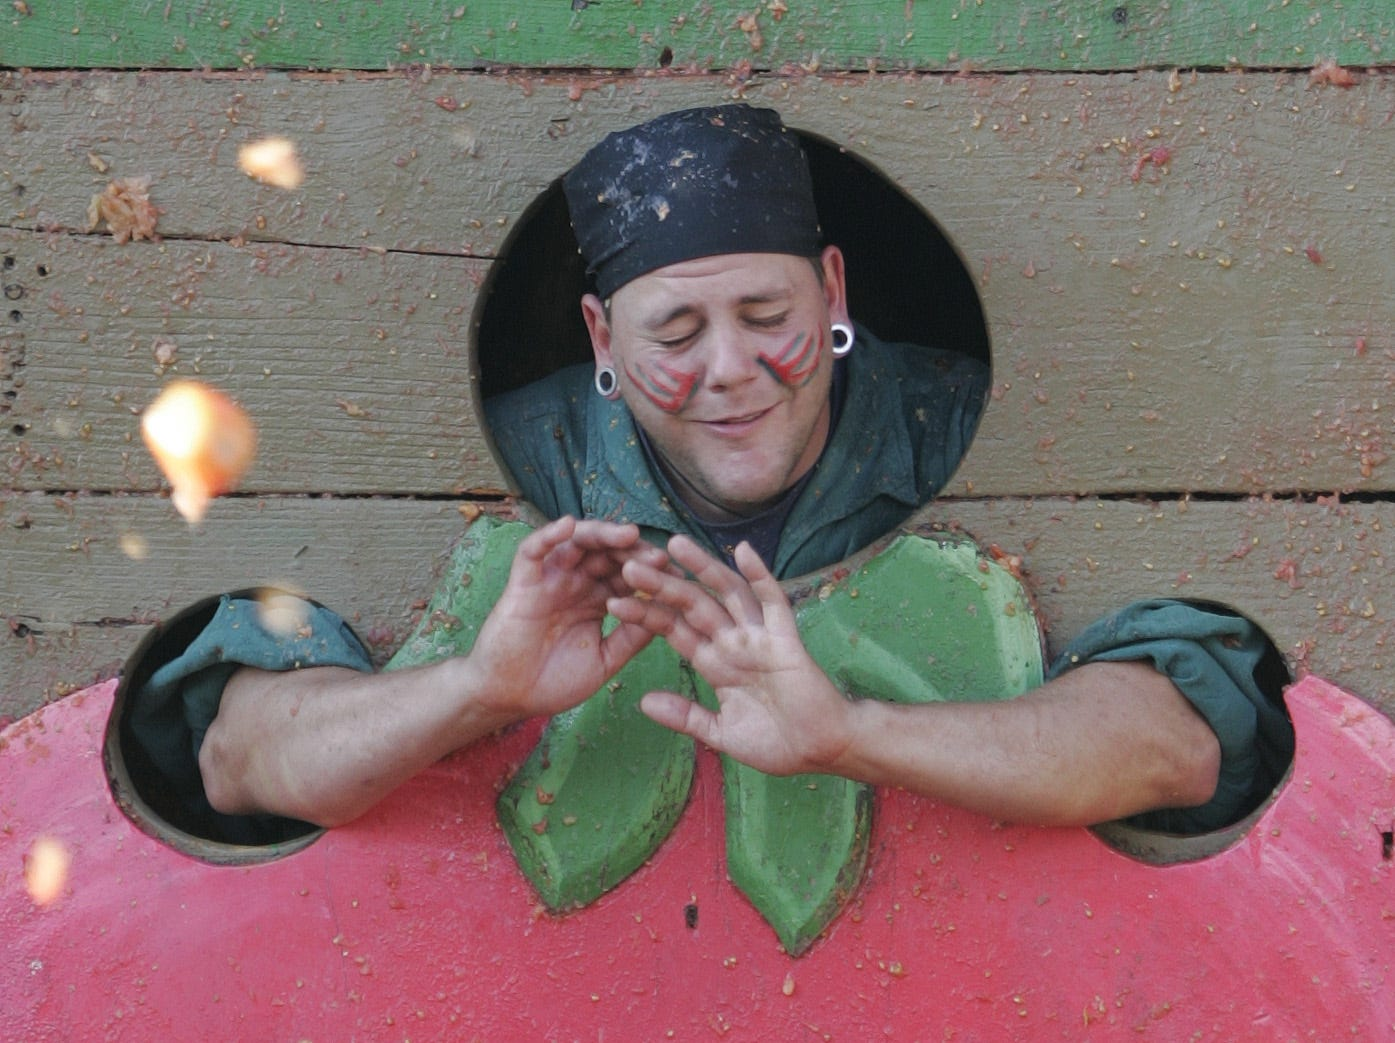 Patrons of the 17th Annual Arizona Renaissance Festival threw tomatoes at Vegetable Justice in 2005.